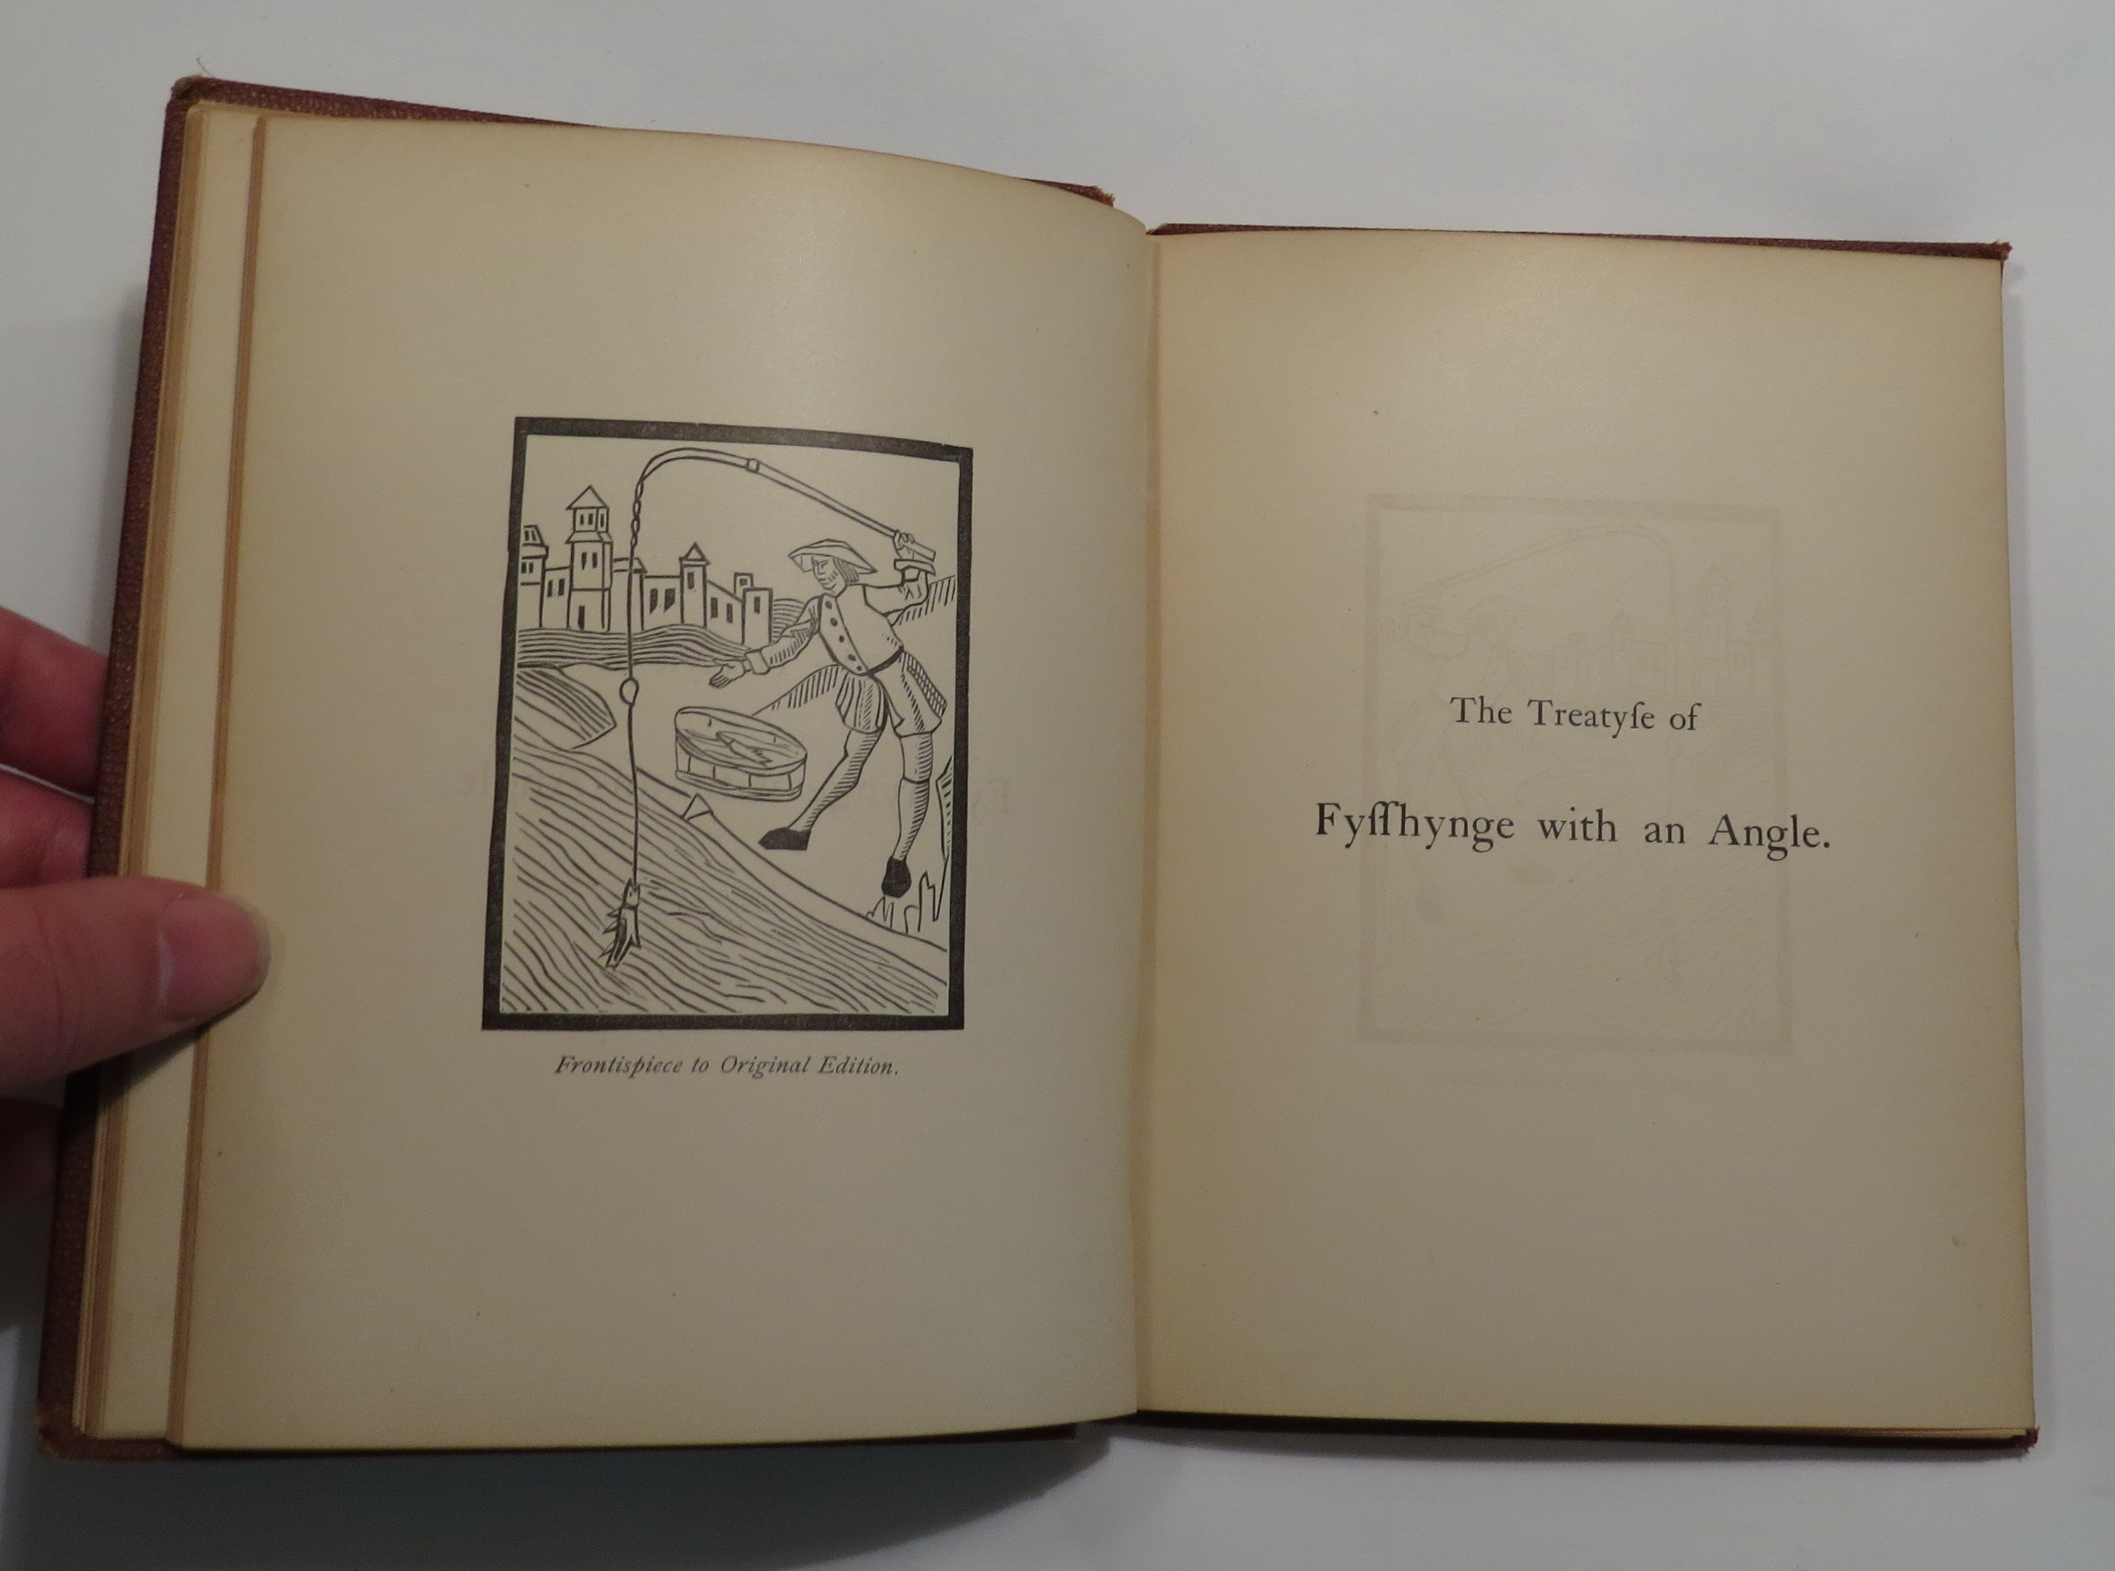 Image for An American Edition of The Treatyse of Fysshynge wyth an Angle, from The Boke of St. Albans, By Dame Juliana Berners, A.D. 1496.